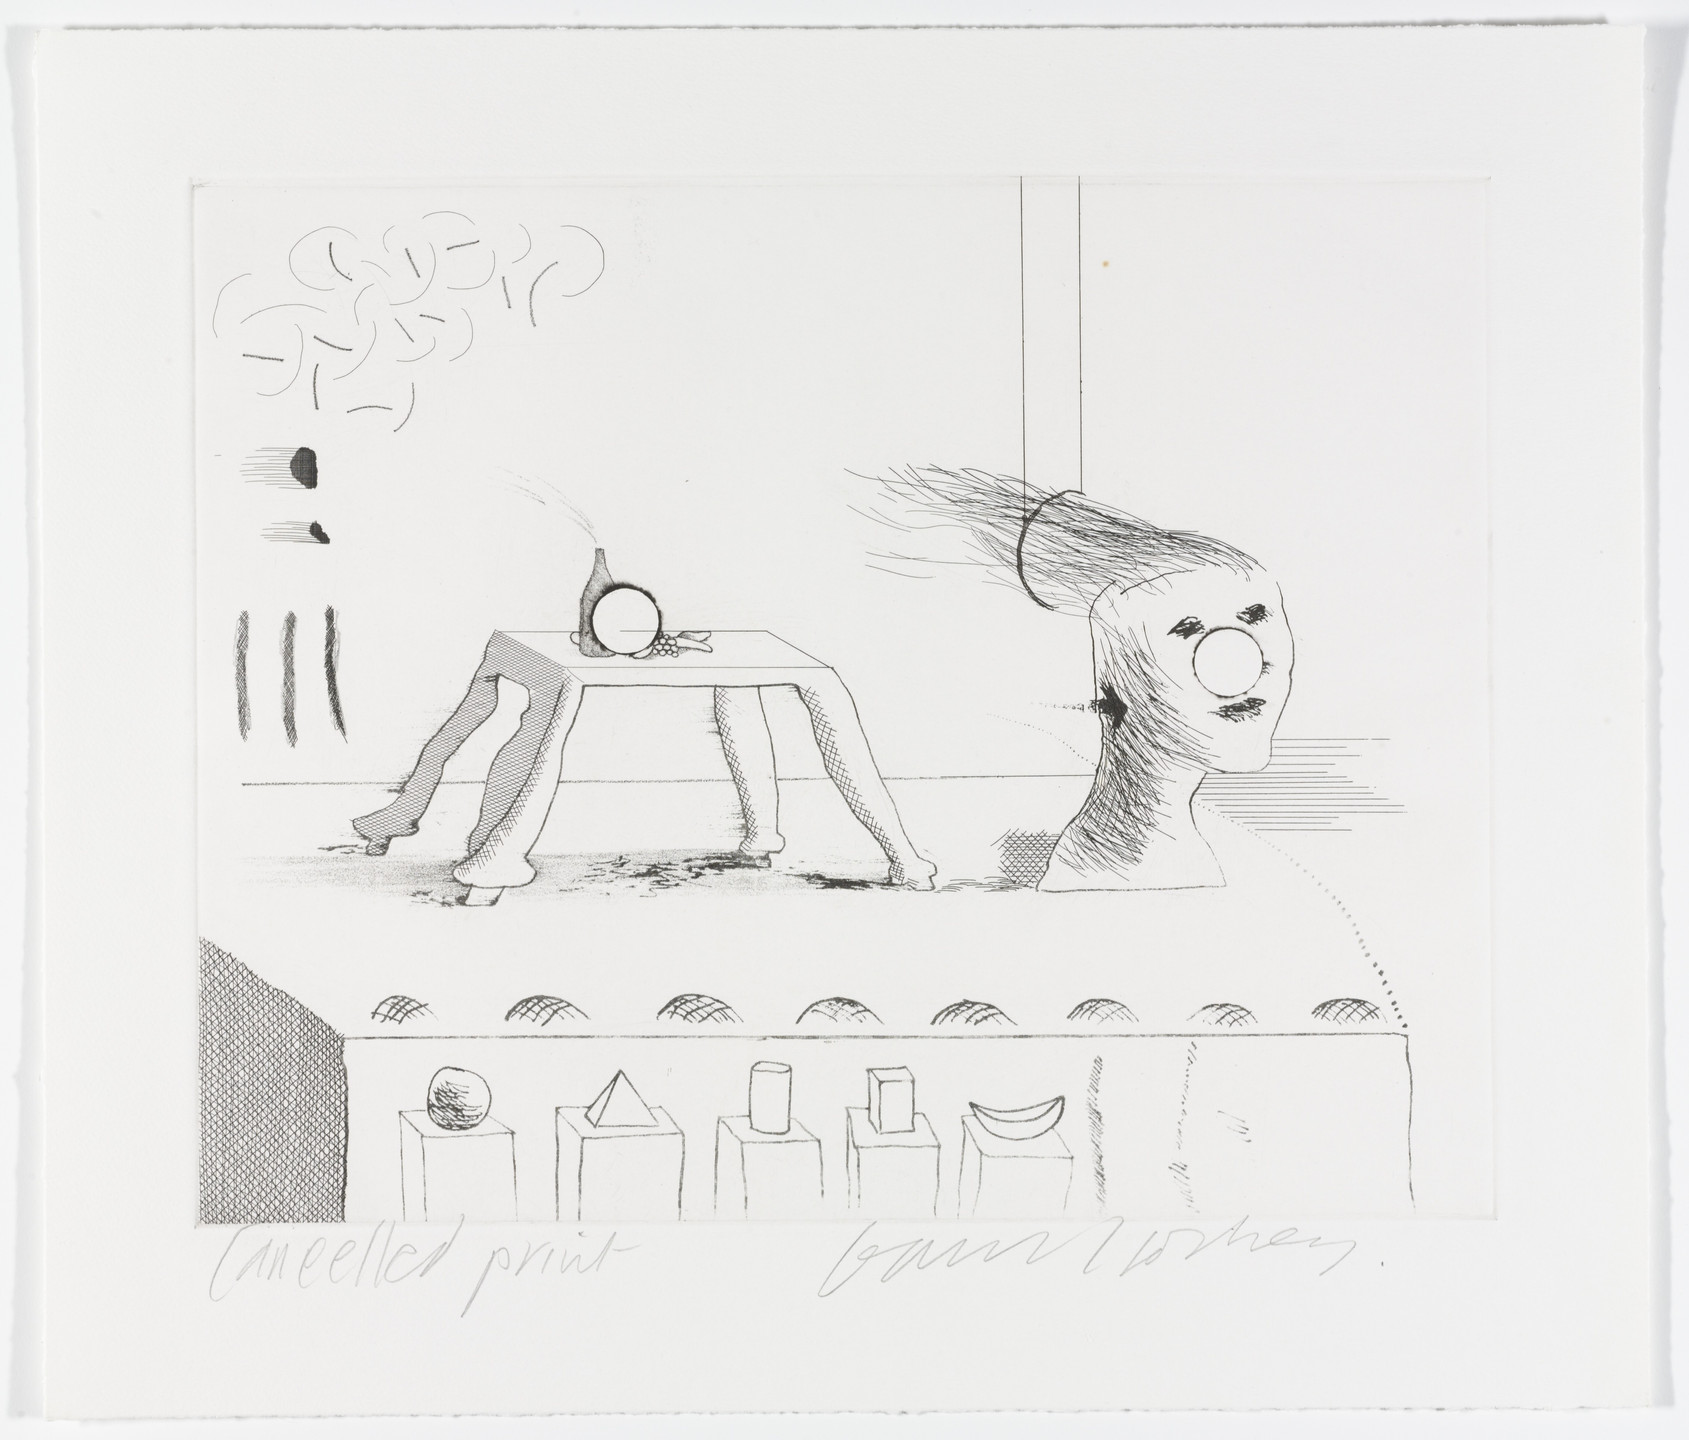 David Hockney. Cancellation proof for A Moving Still Life from The Blue Guitar. 1977